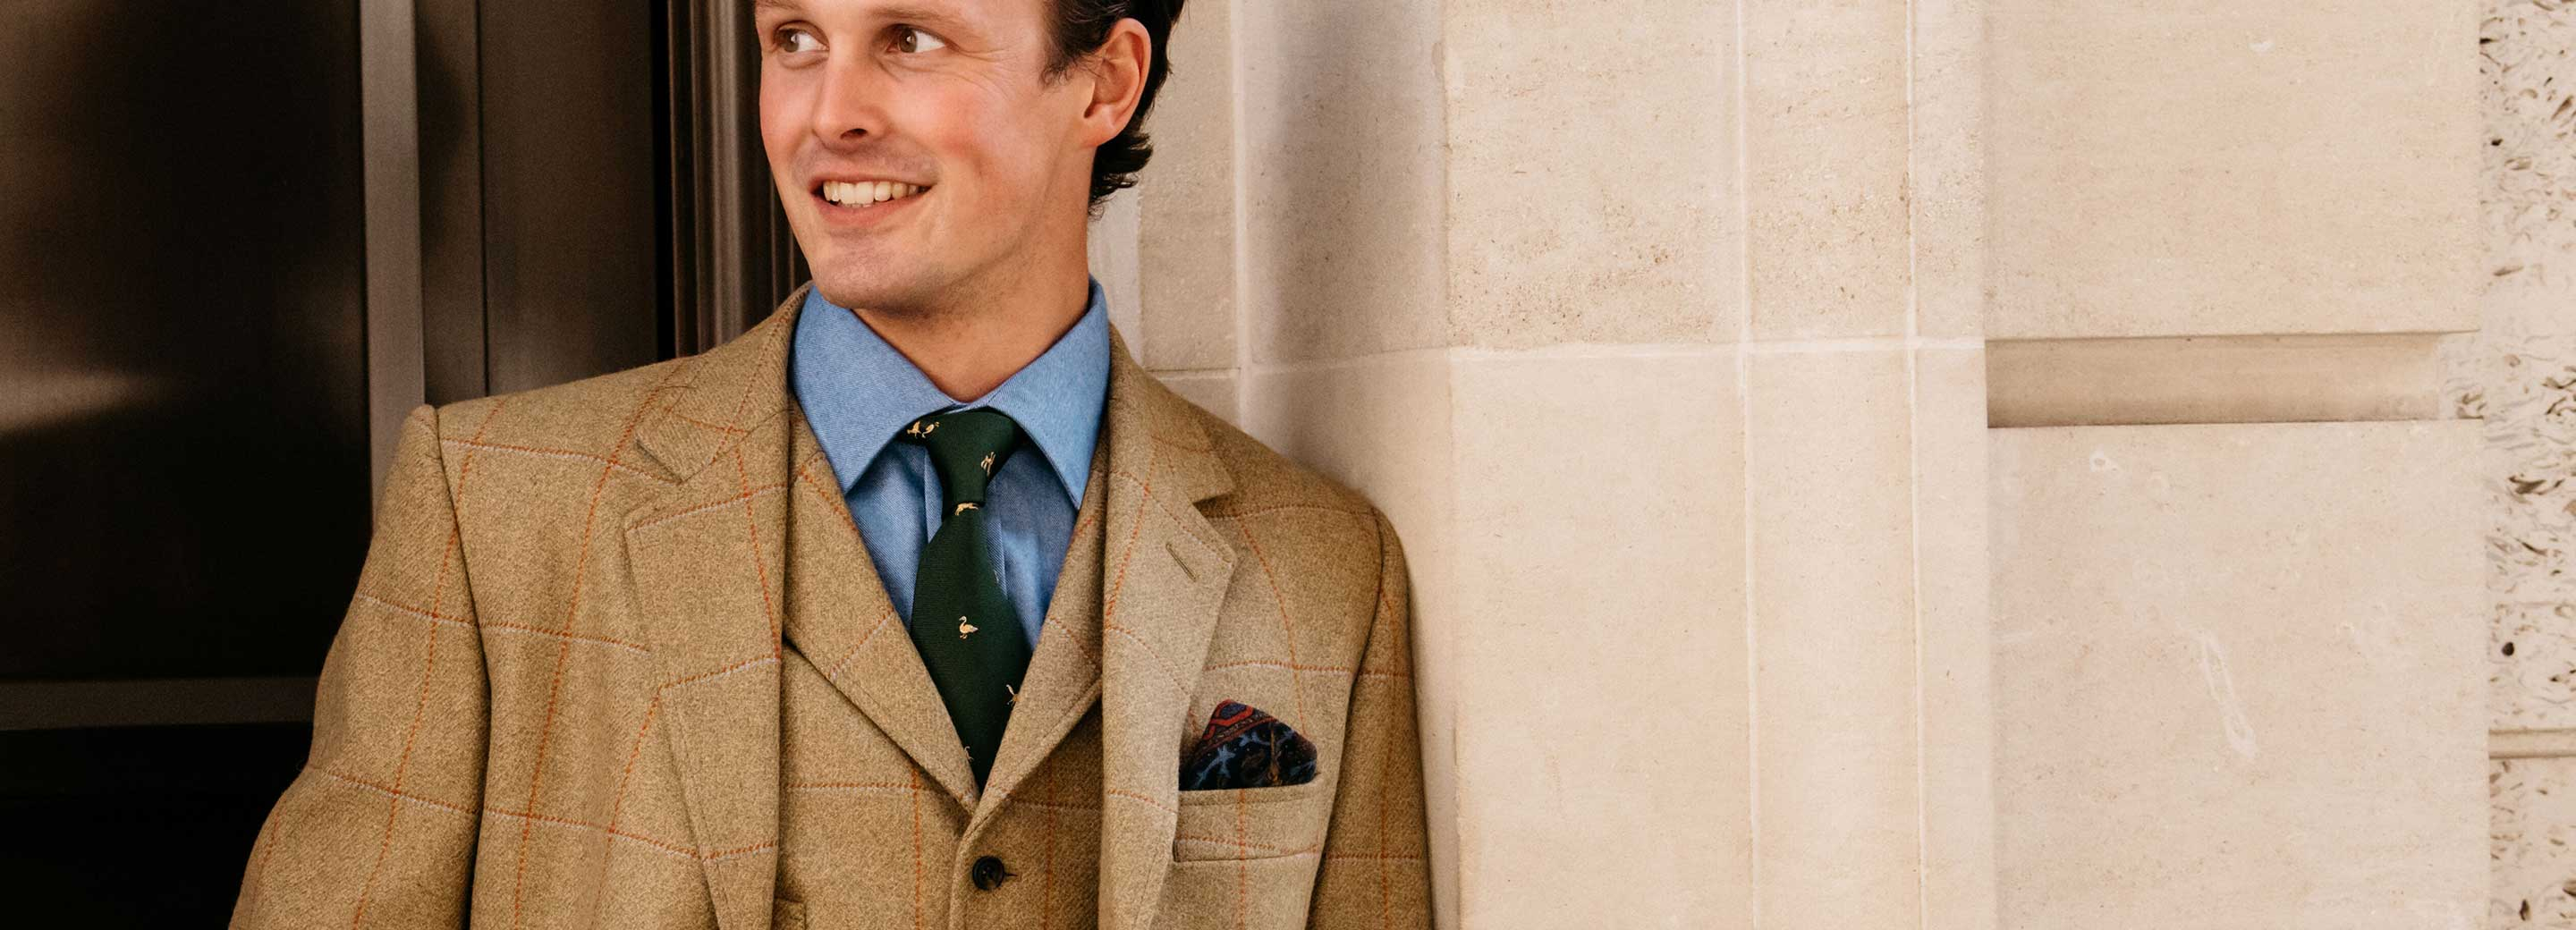 Tweed, Wool and Moleskin Jackets